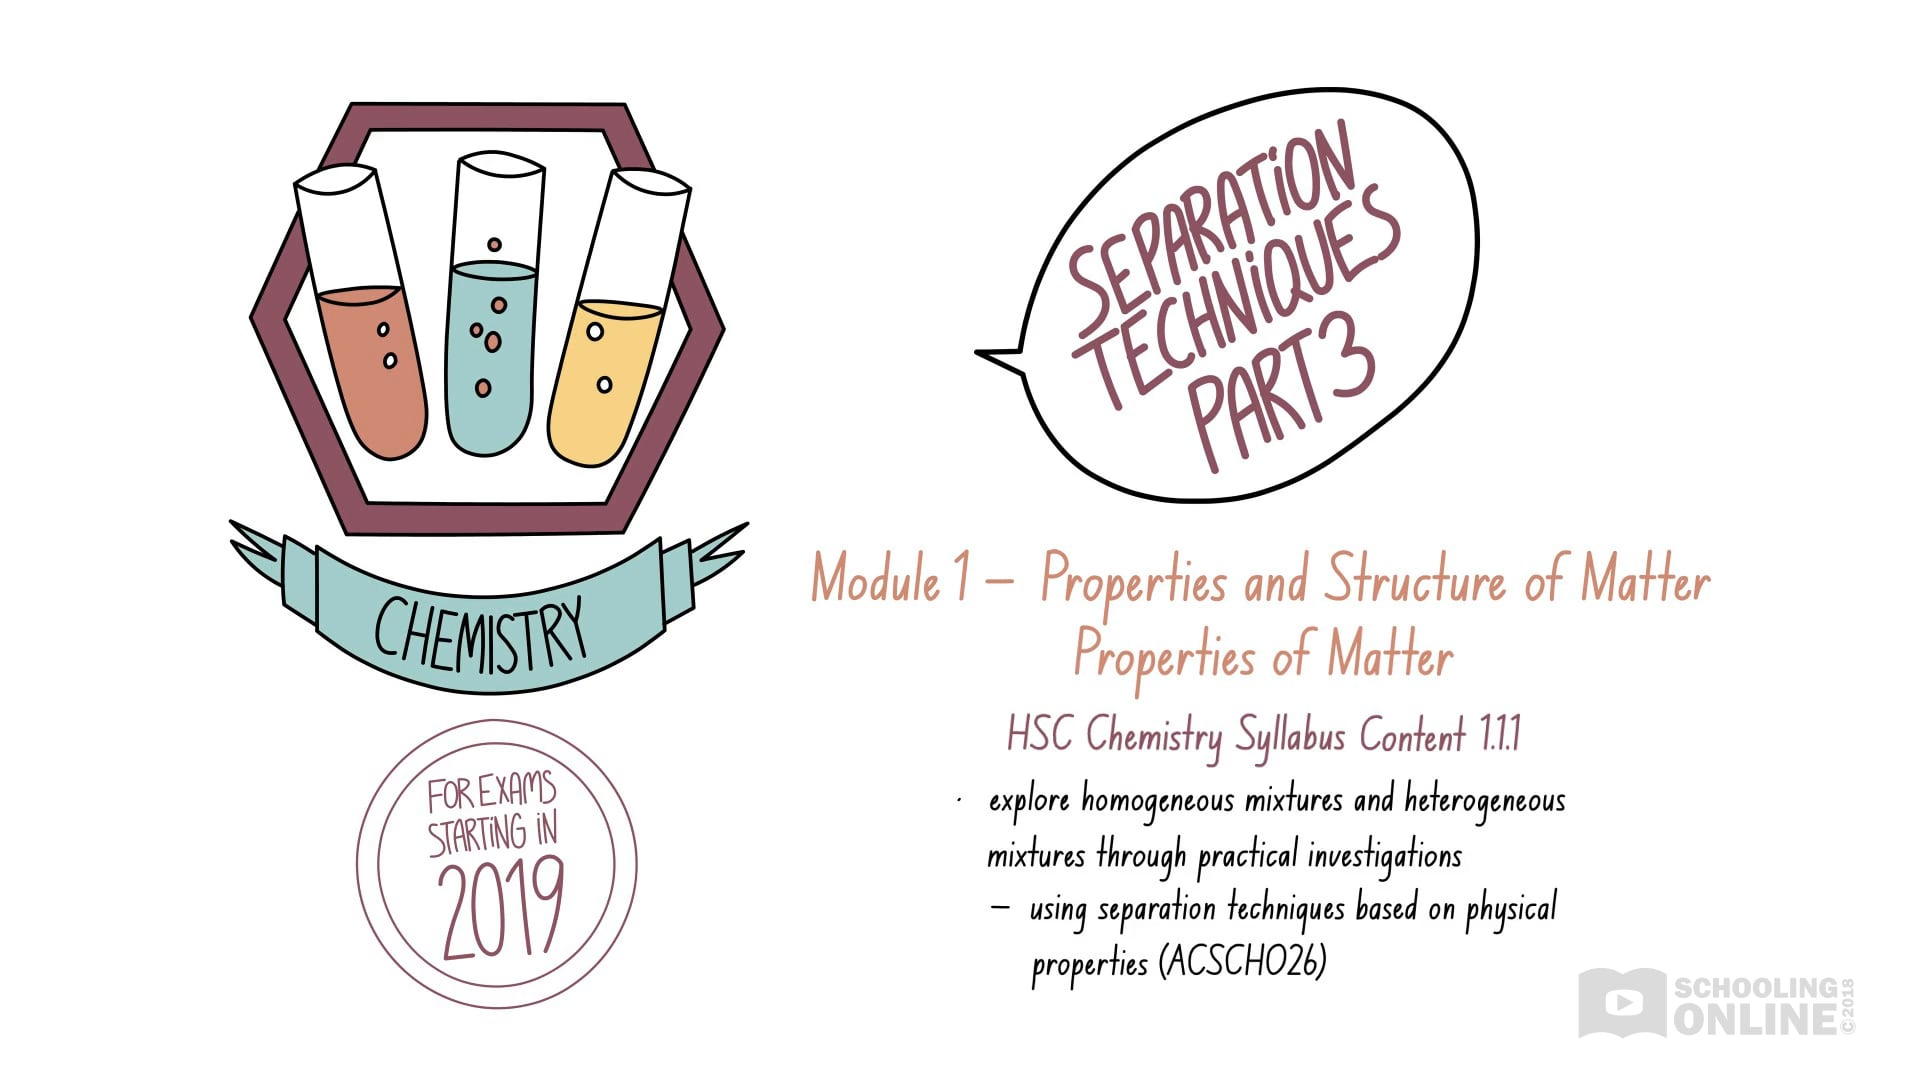 Separation Techniques 3 - Properties of Matter